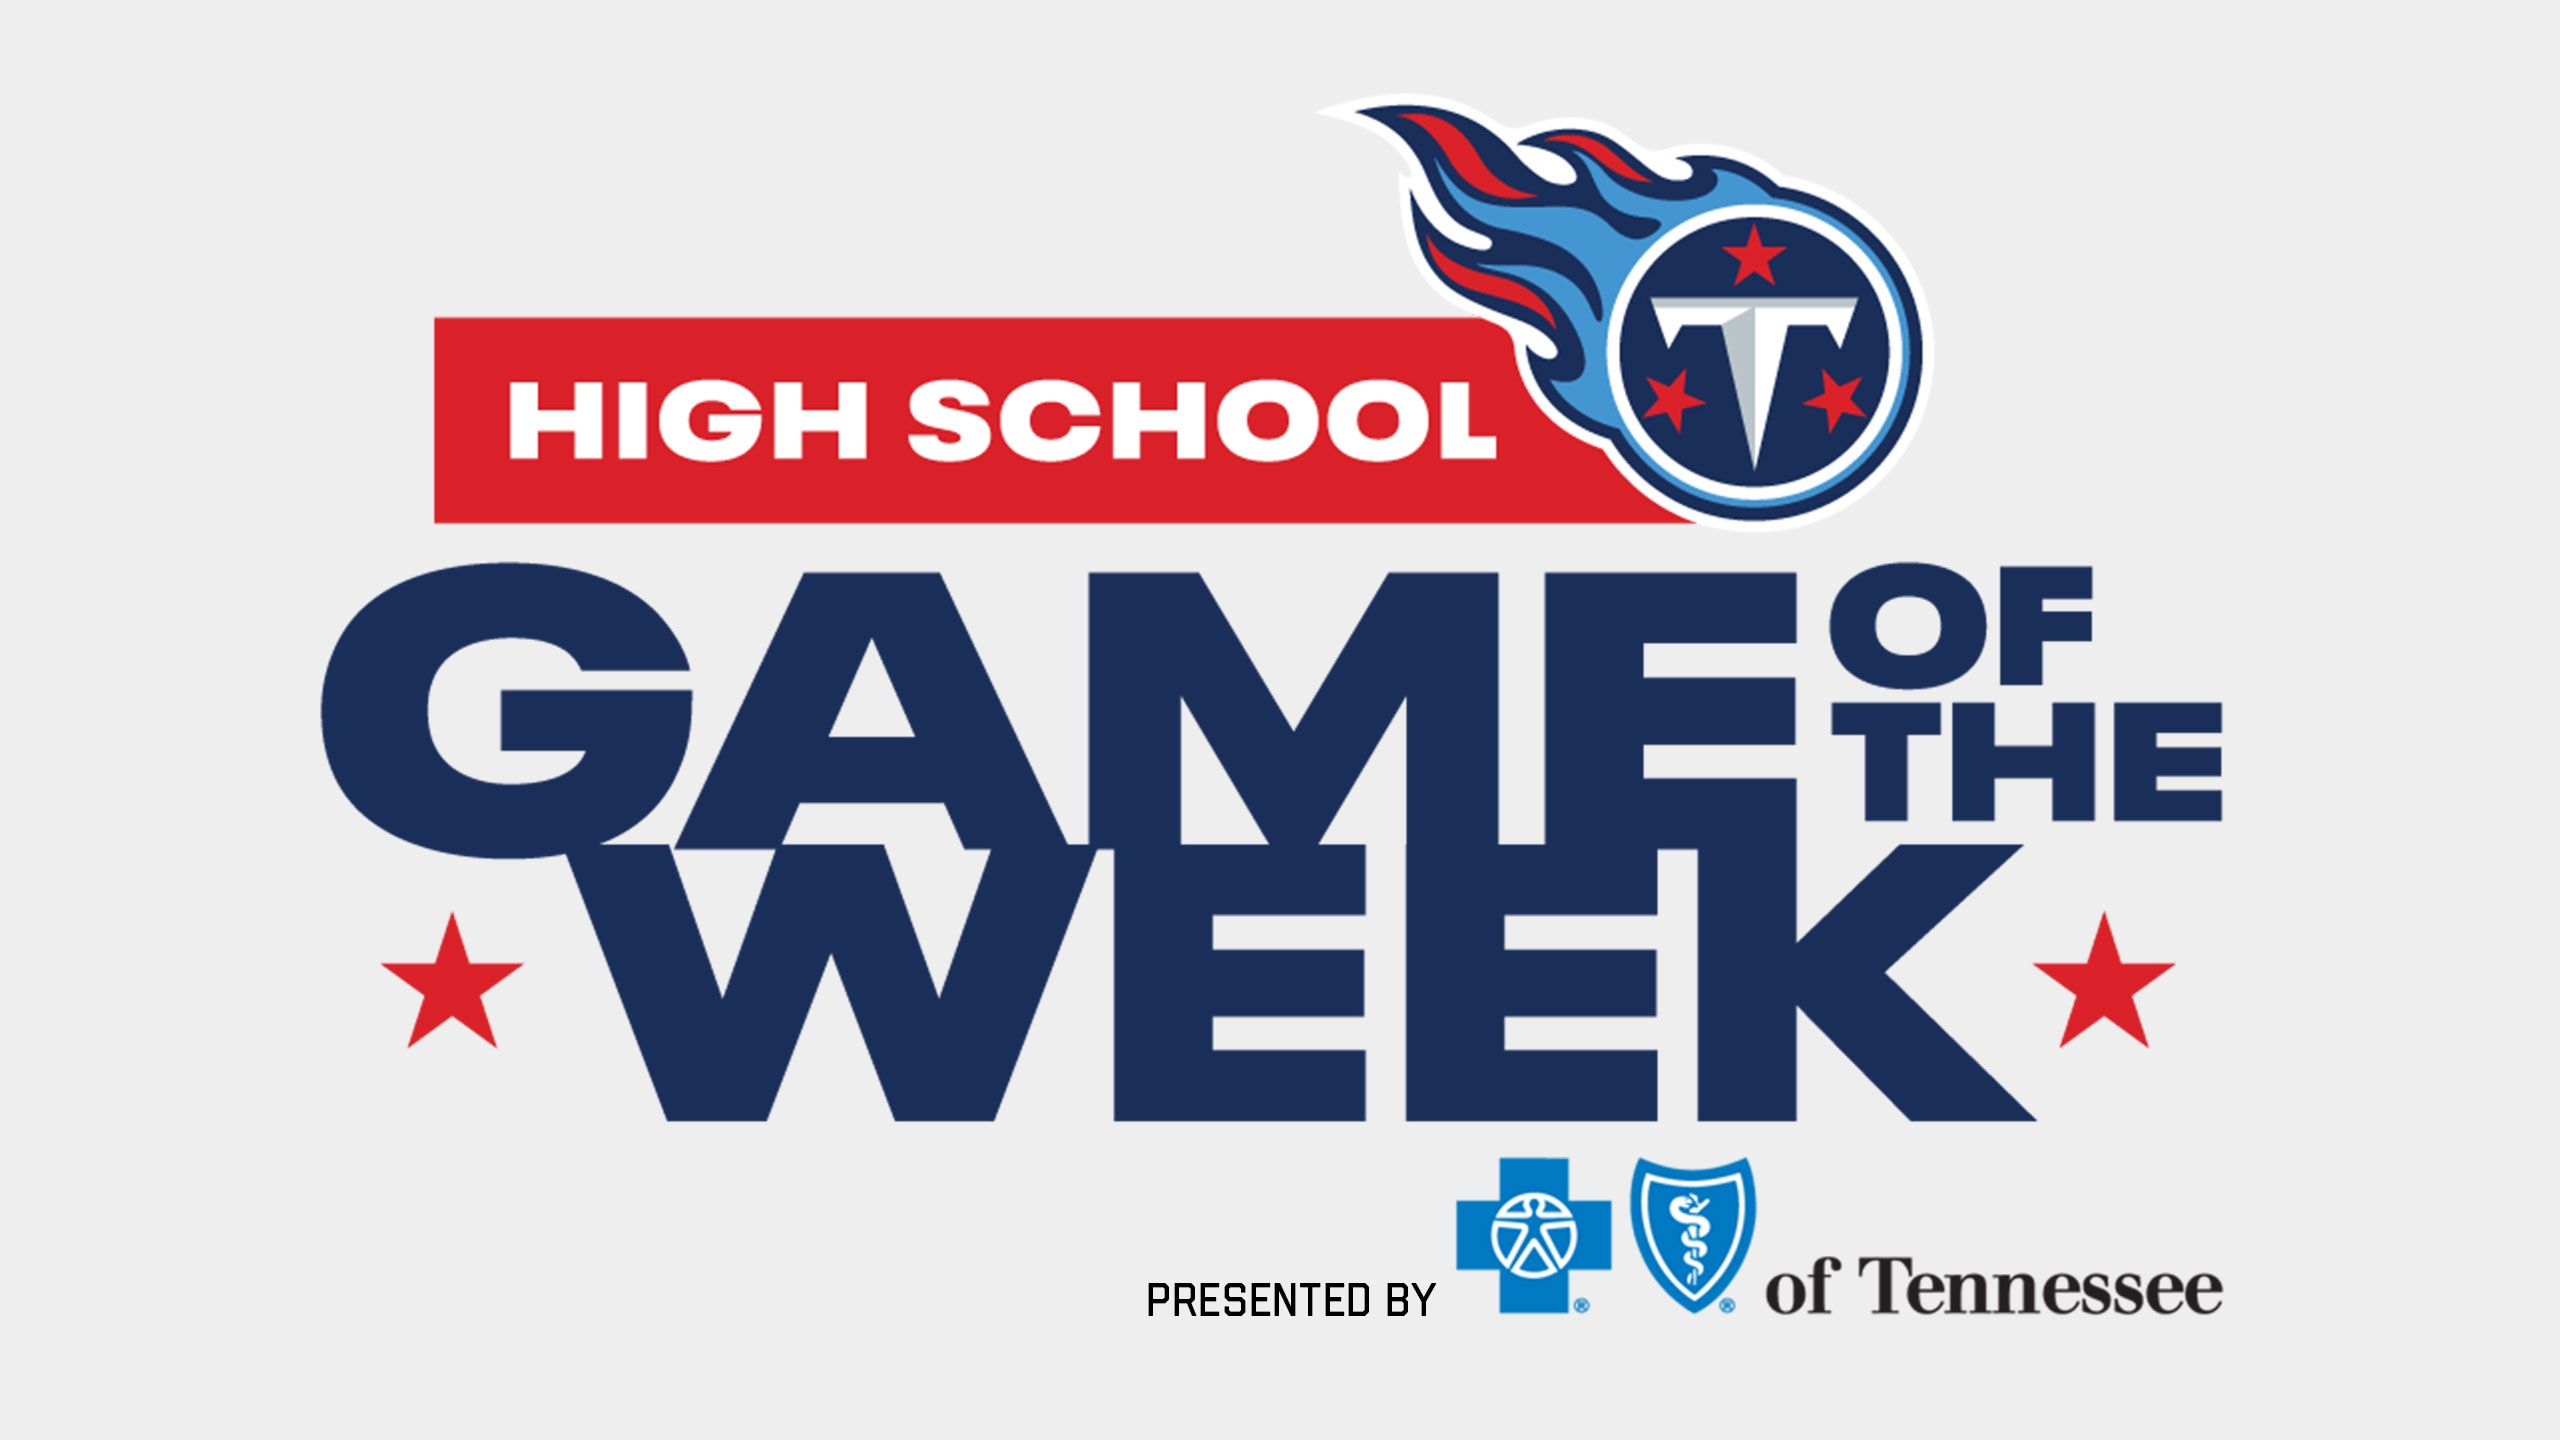 titans-high-school-game-of-the-week